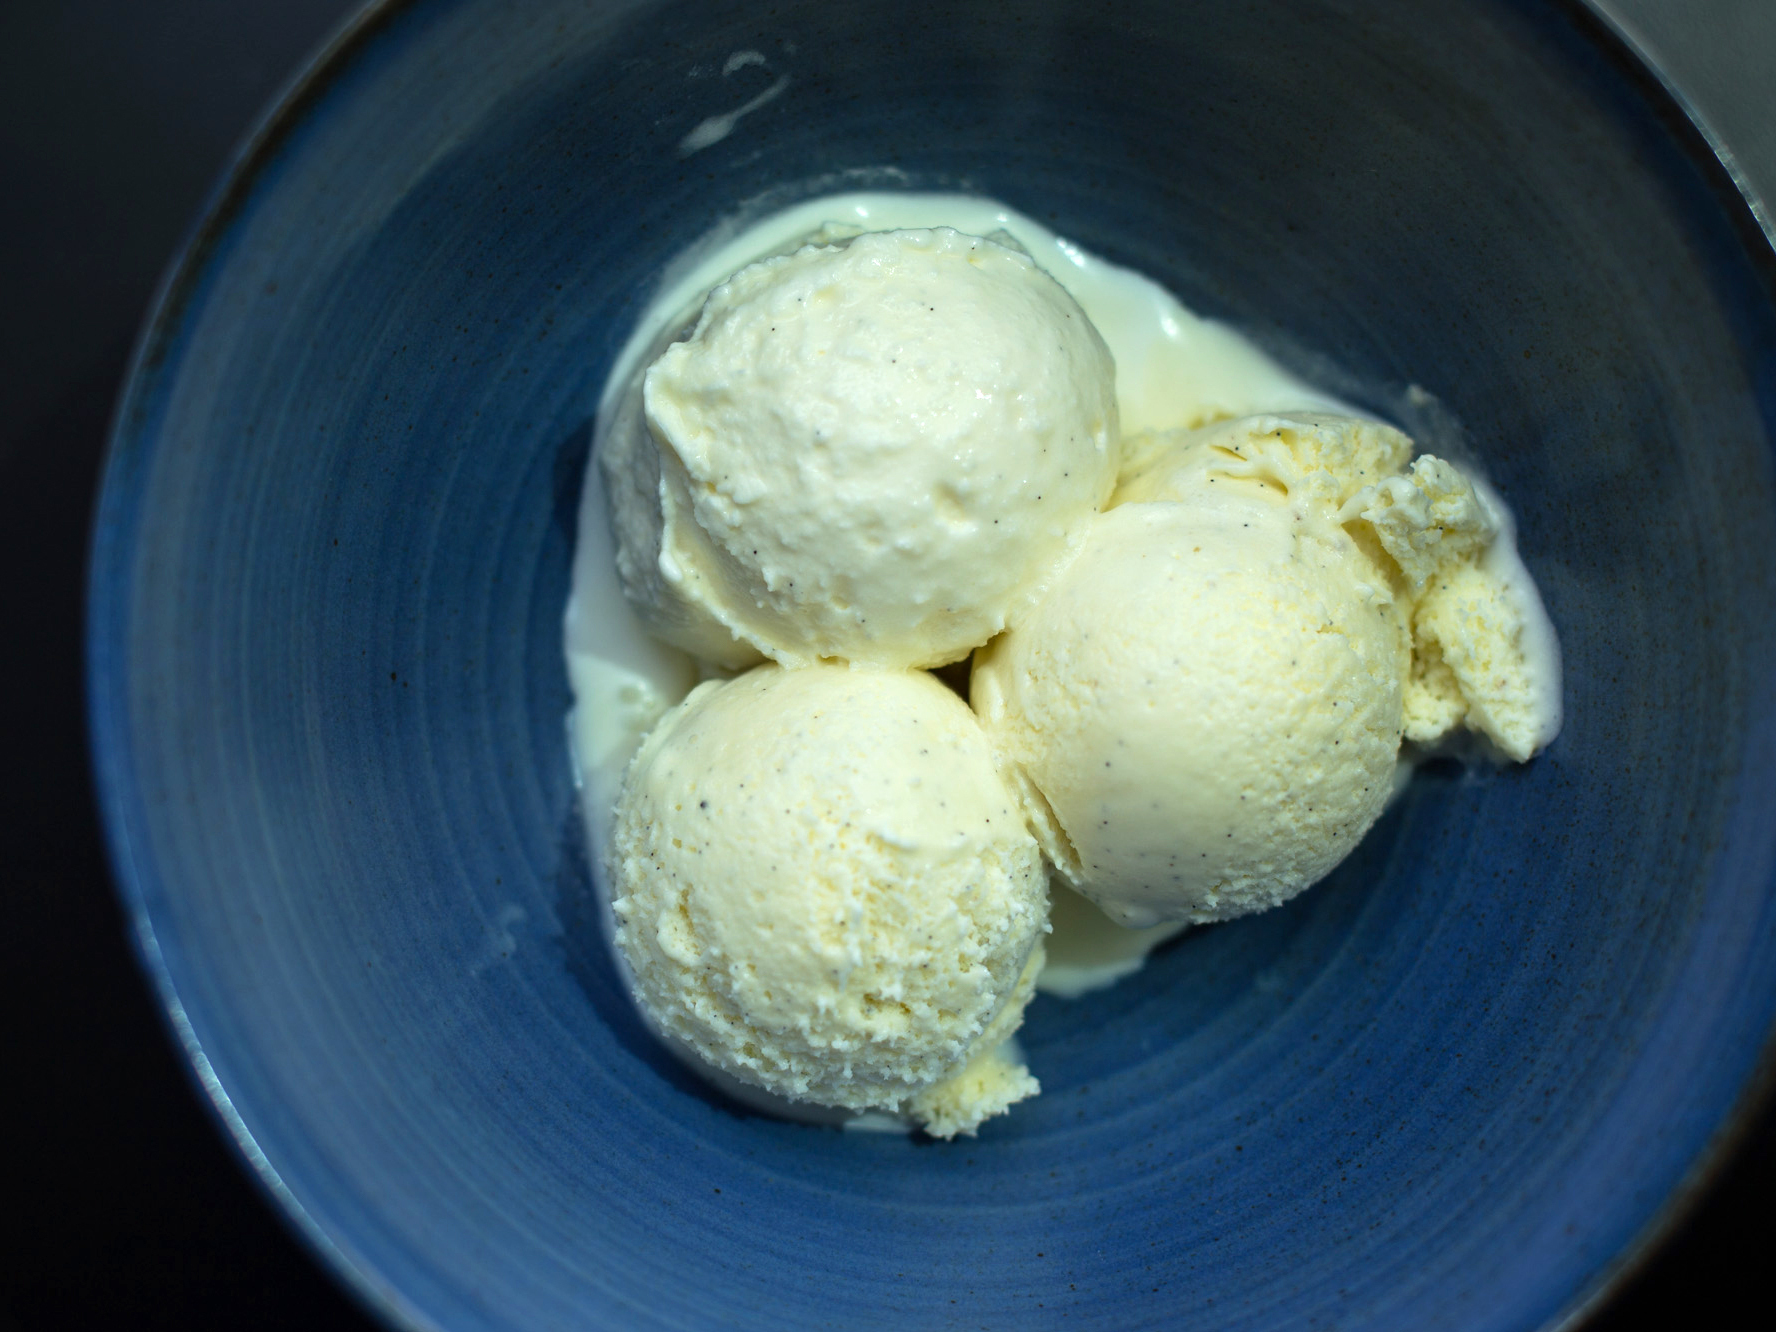 Three scoops of vanilla ice cream made with vanilla beans from Mexico, Tahiti and Madagascar. Photo: Meredith Rizzo/NPR